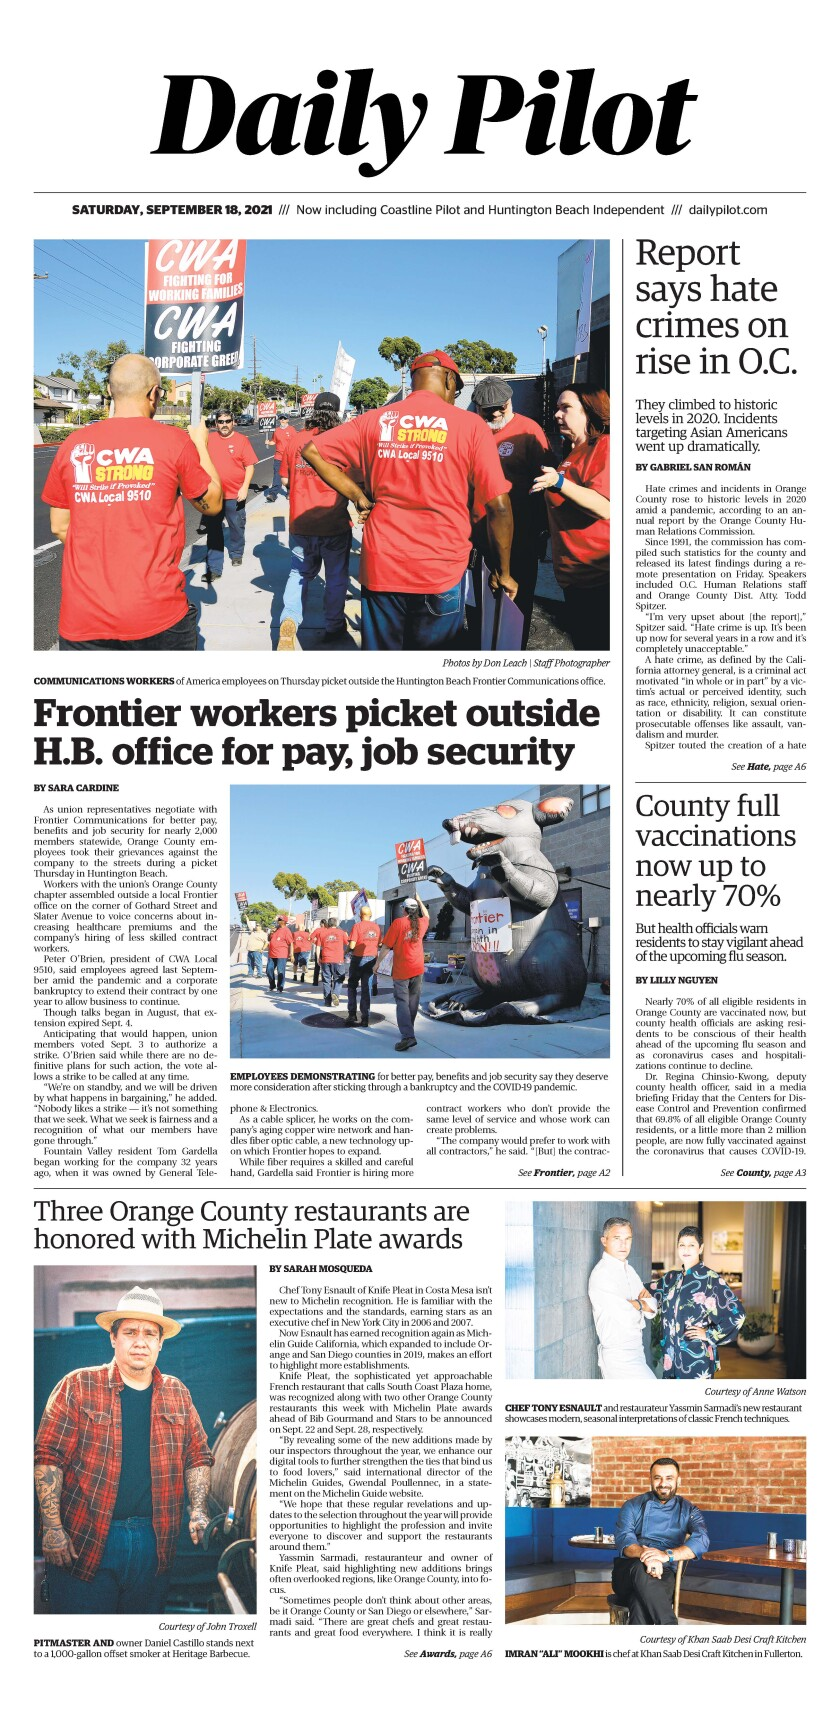 Front page of Daily Pilot e-newspaper for Saturday, Sept. 18, 2021.